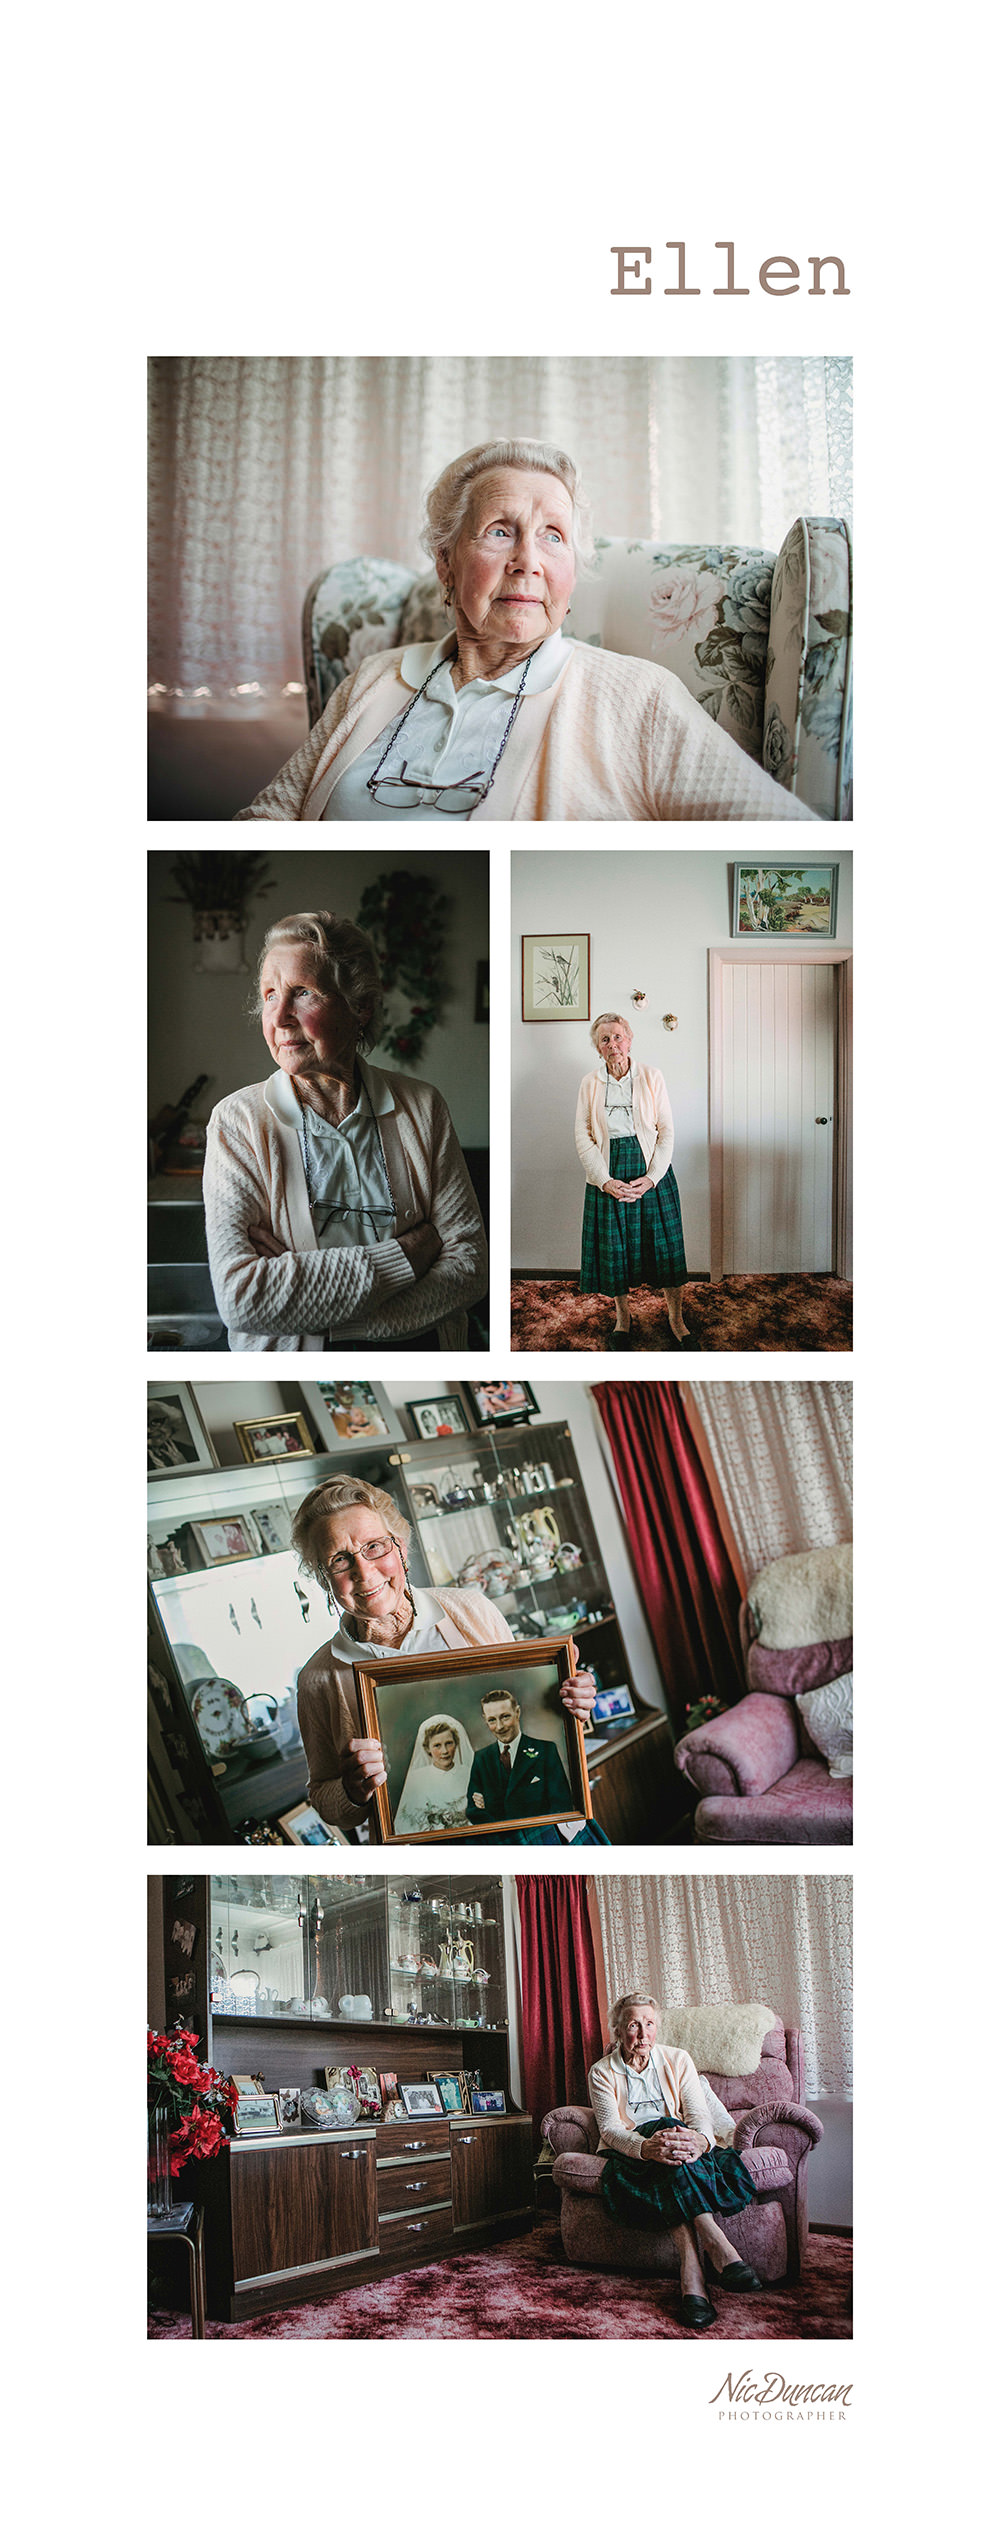 A life well lived in Denmark